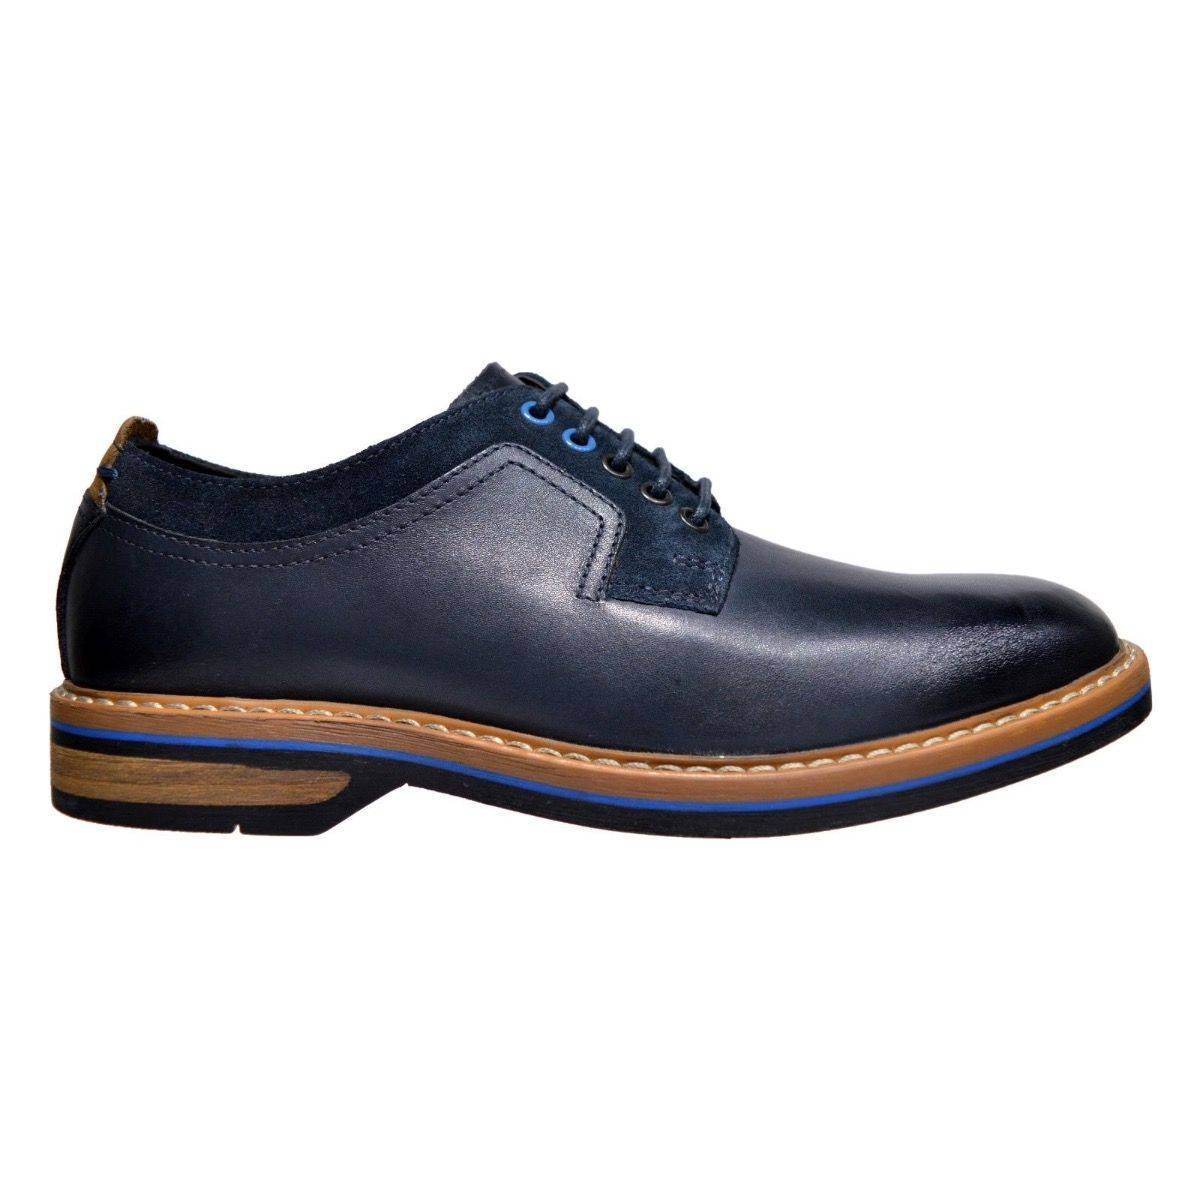 Clarks Pitney Walk Dark Blue lace up leather Mens Shoe-9.5